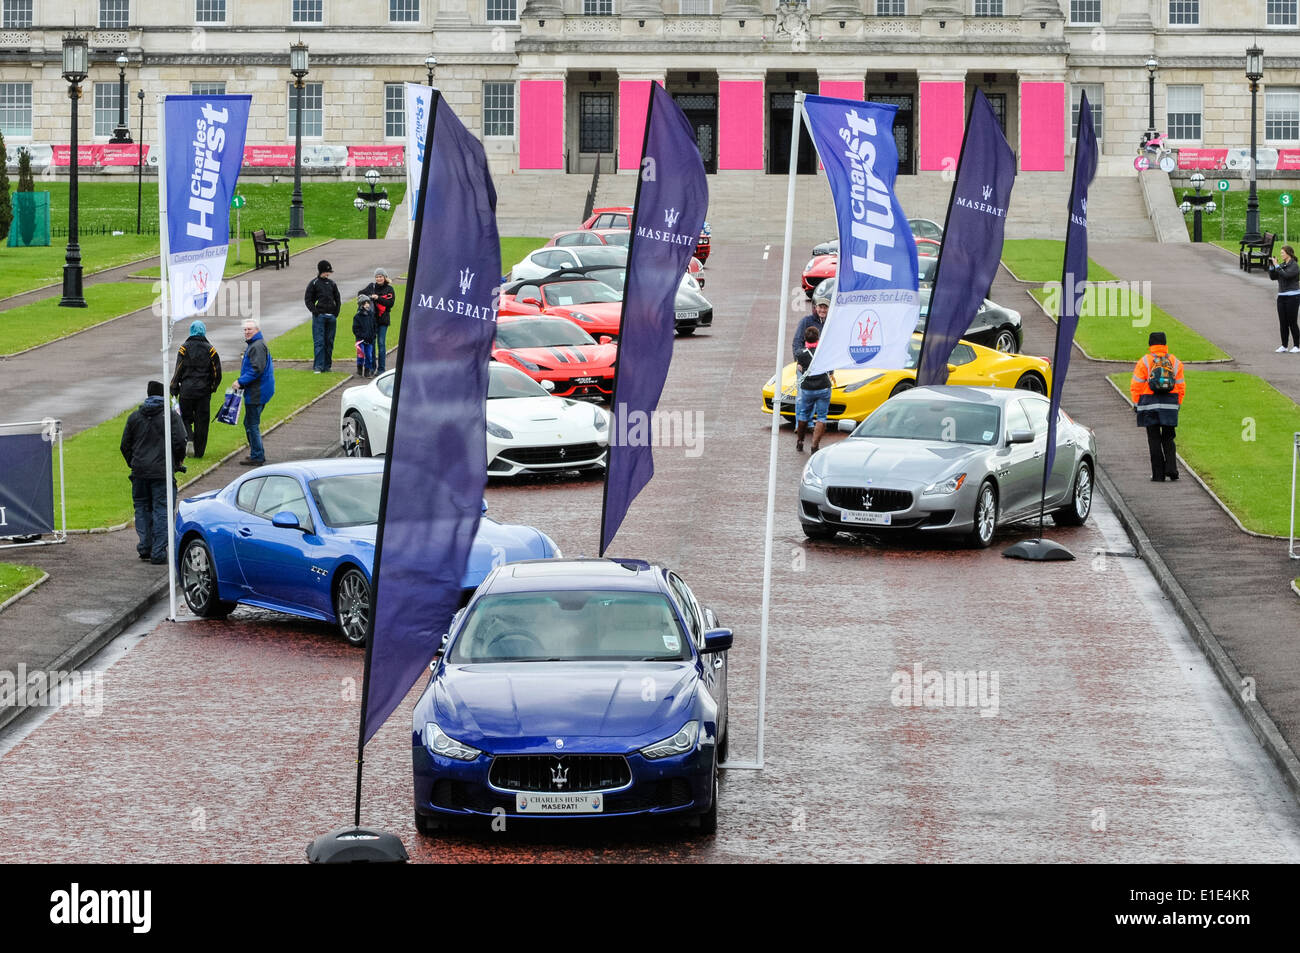 A number of Maserati and Ferrari cars on display - Stock Image